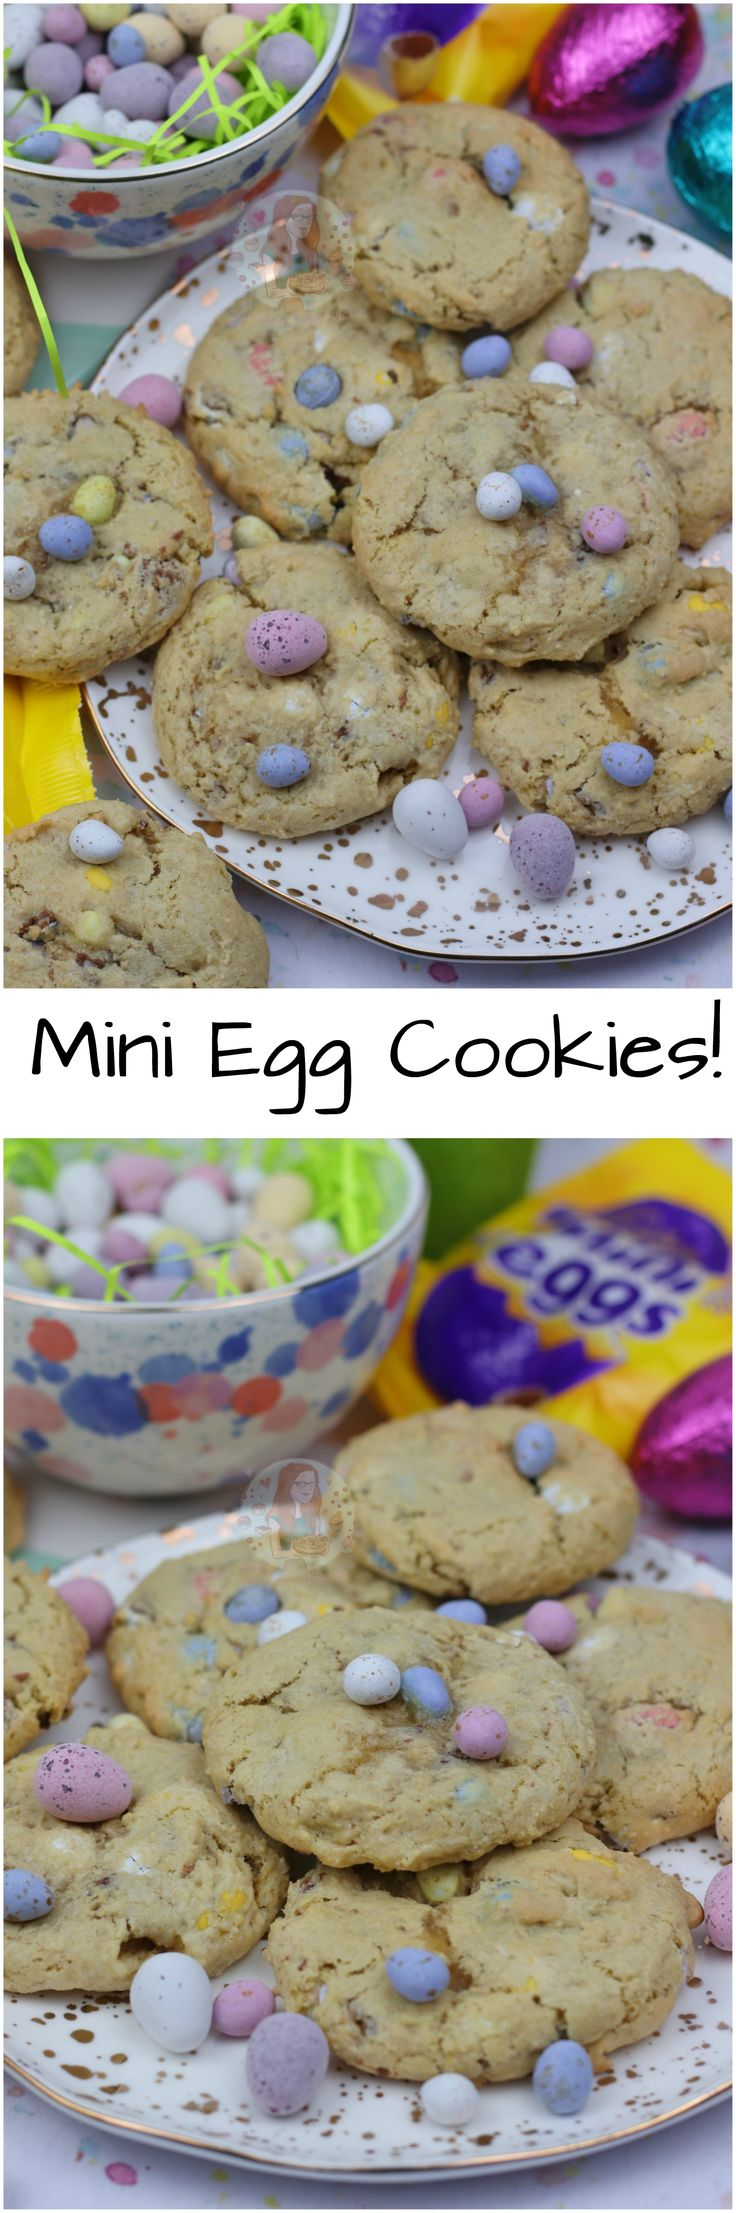 Mini Egg Cookies!! Easy, Simple, Crunchy and Gooey Mini Egg Cookies that are PERFECT for Easter!